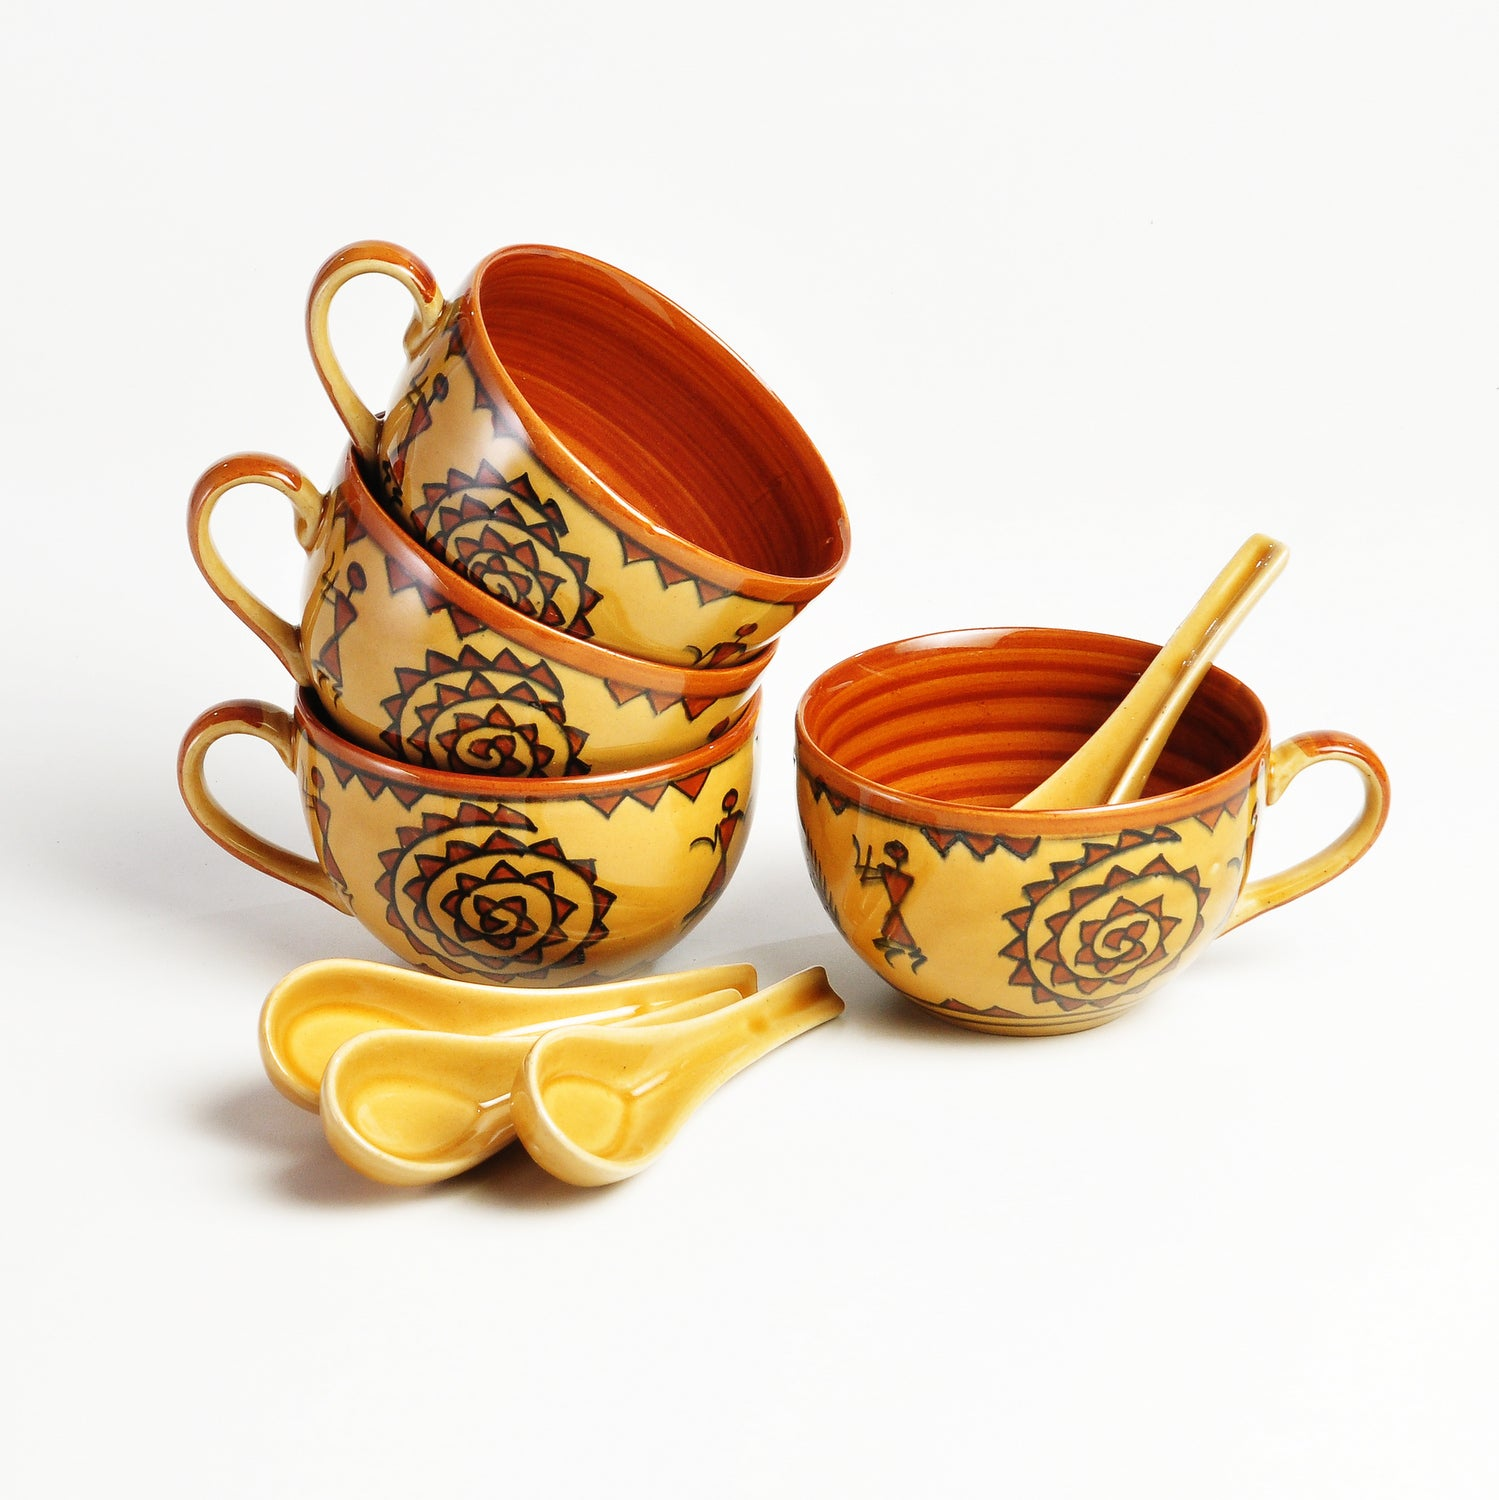 warli-jumbo-soup-bowls-bowls-with-spoons-dec5271